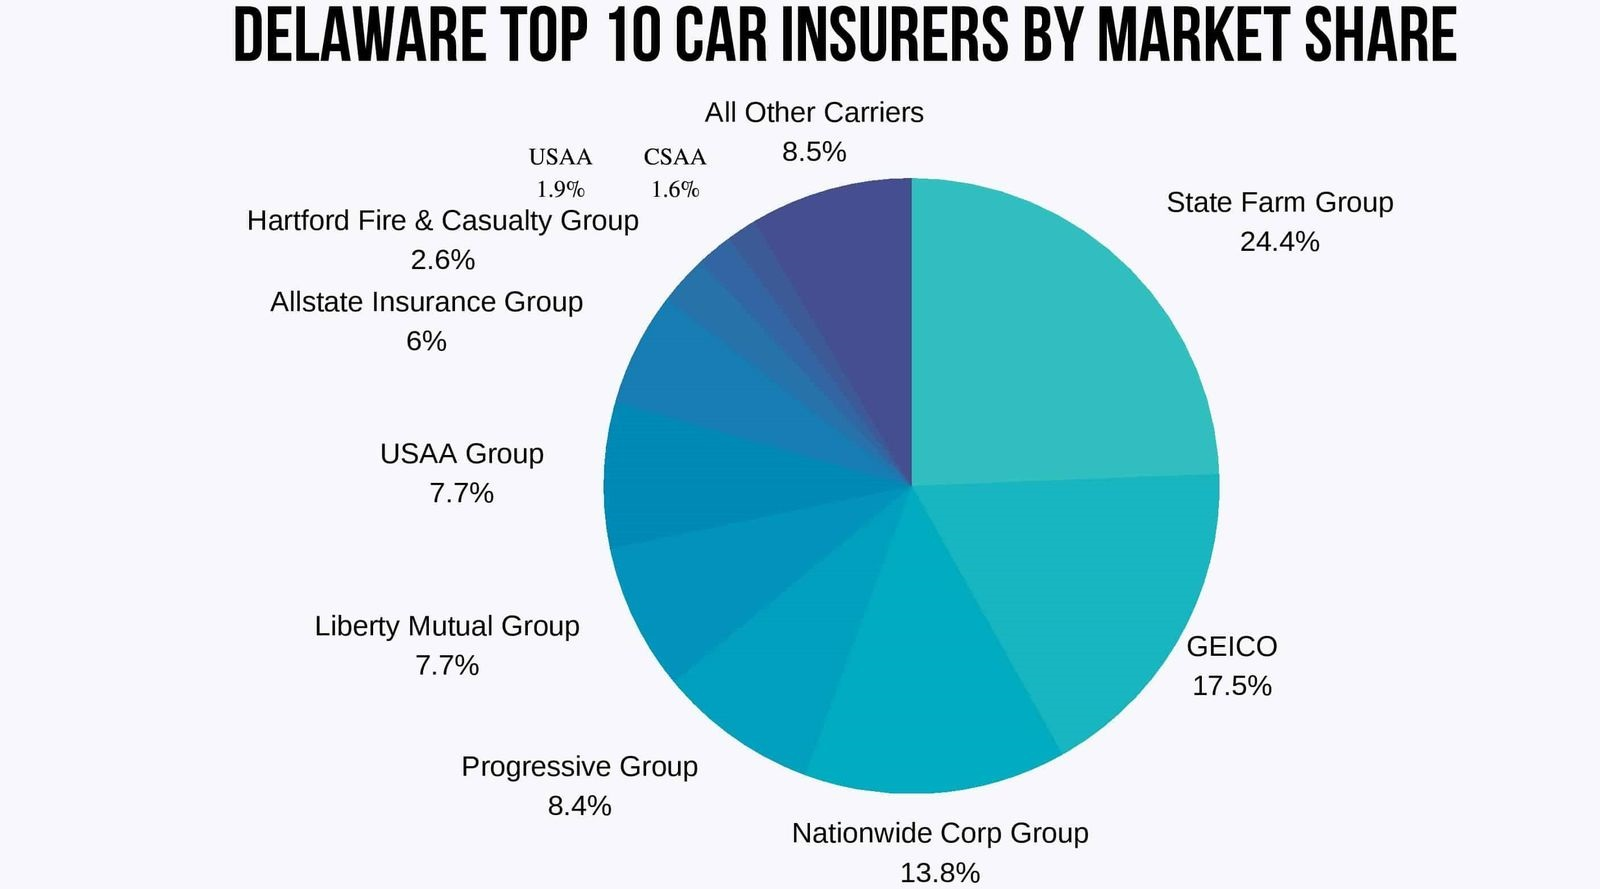 pie chart of Delaware's Top 10 Car Insurance Companies by Market Share